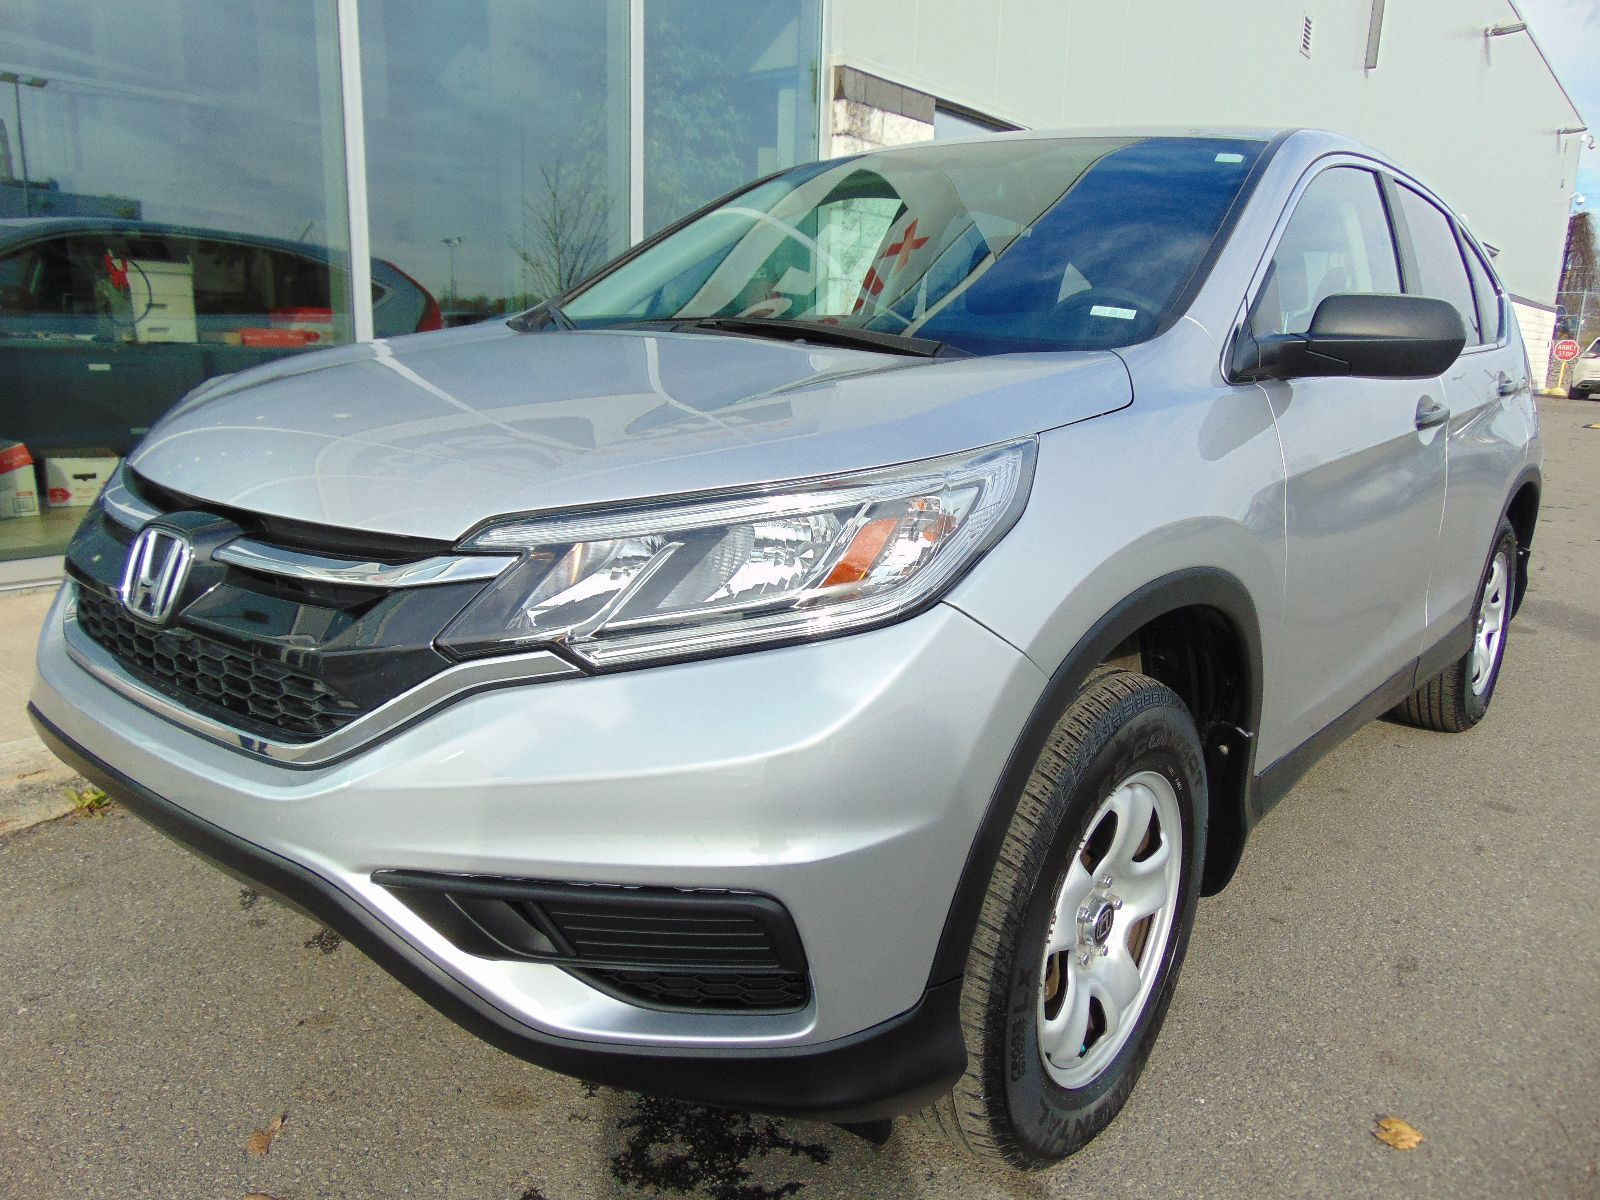 used 2015 honda cr v lx deal pending awd in montreal laval and south shore 96752. Black Bedroom Furniture Sets. Home Design Ideas